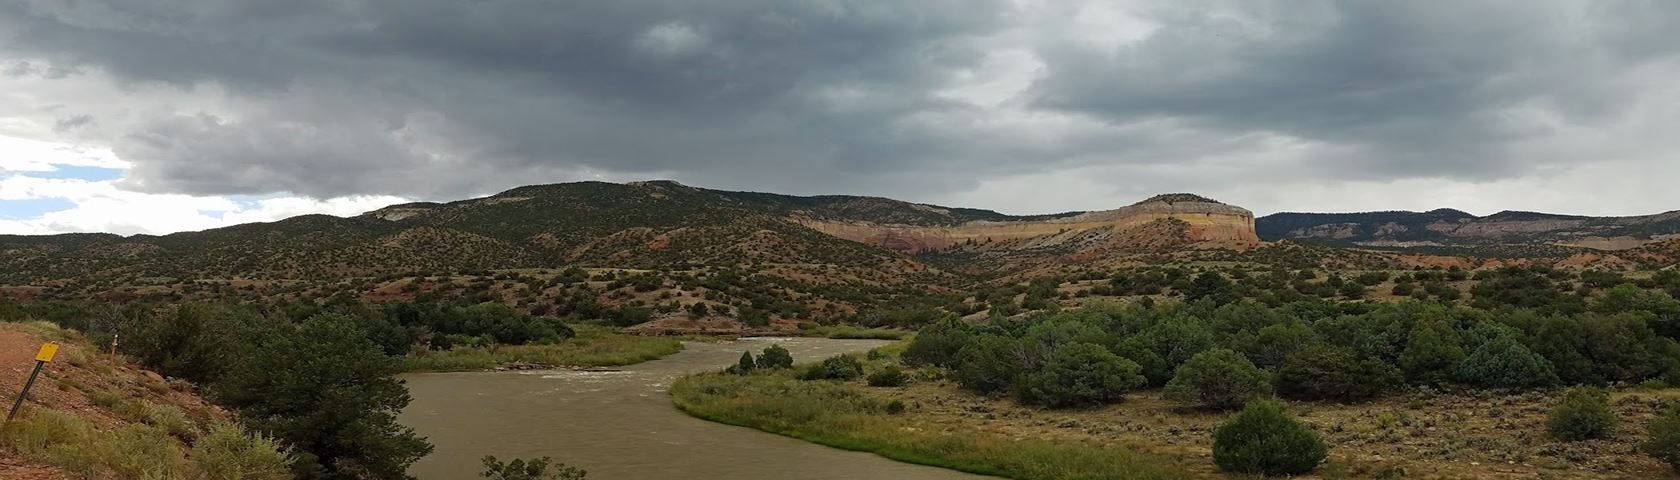 Rain Clouds over the Chama